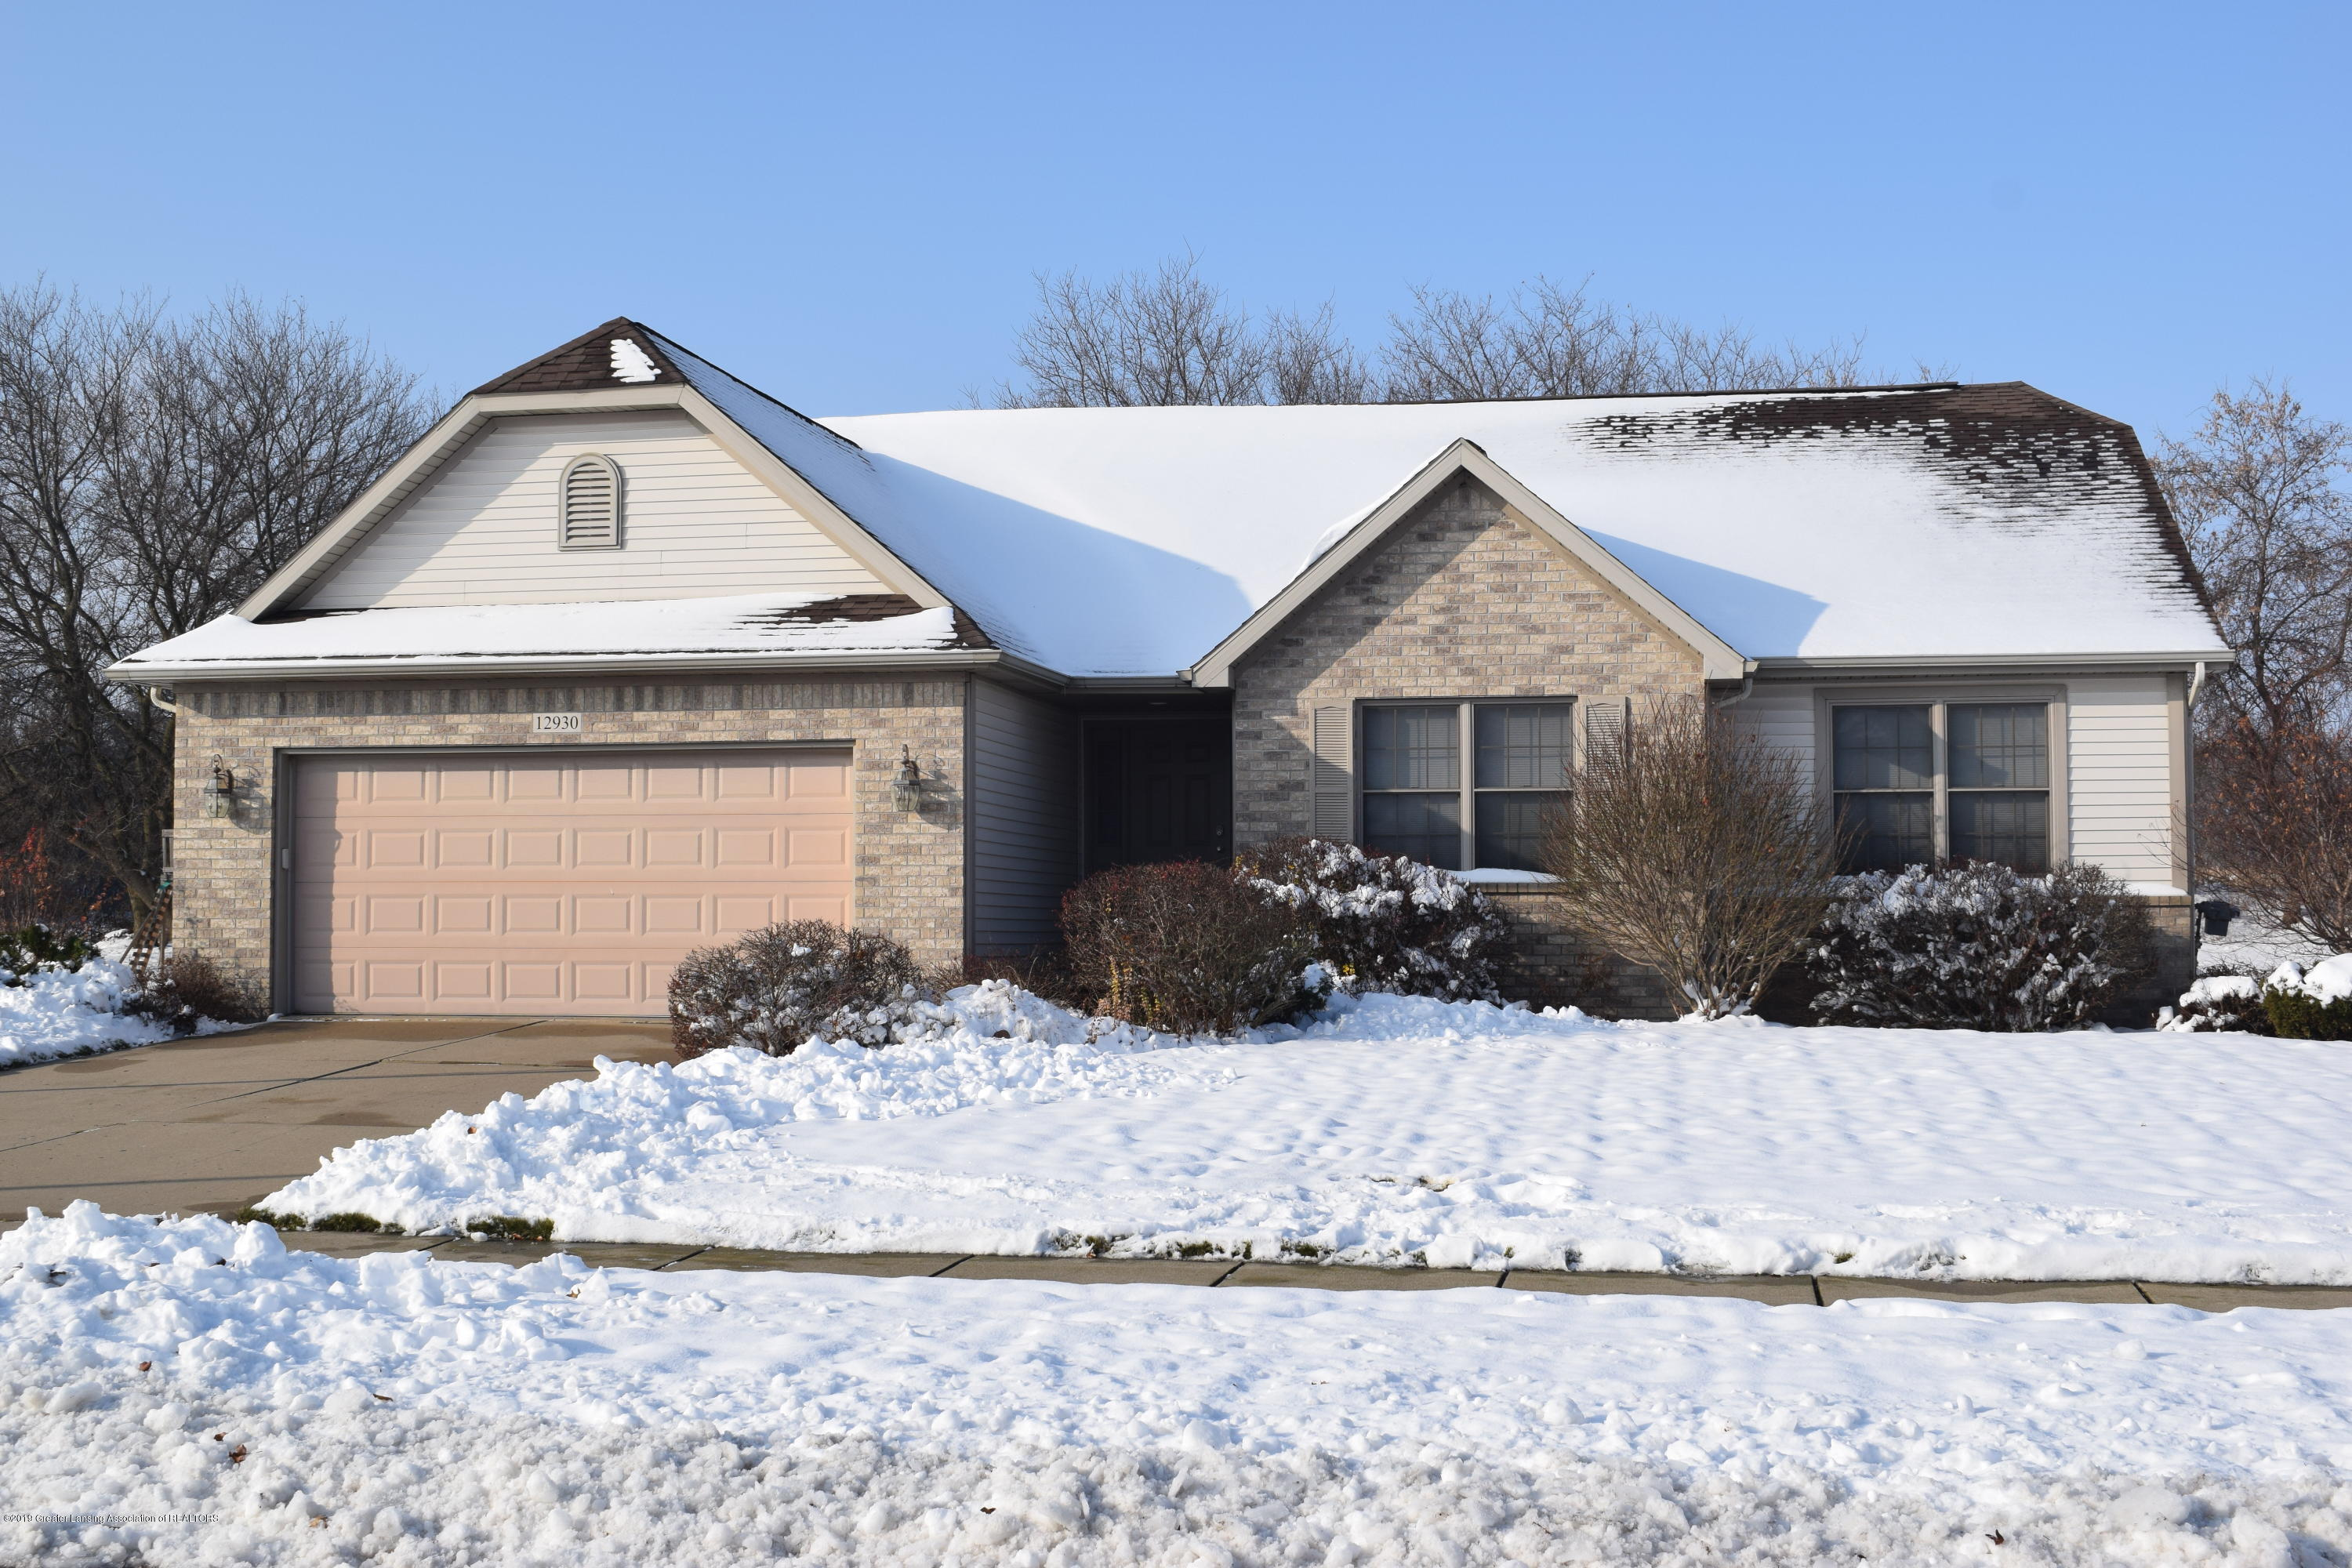 12930 Chartreuse Dr - 1 - 1